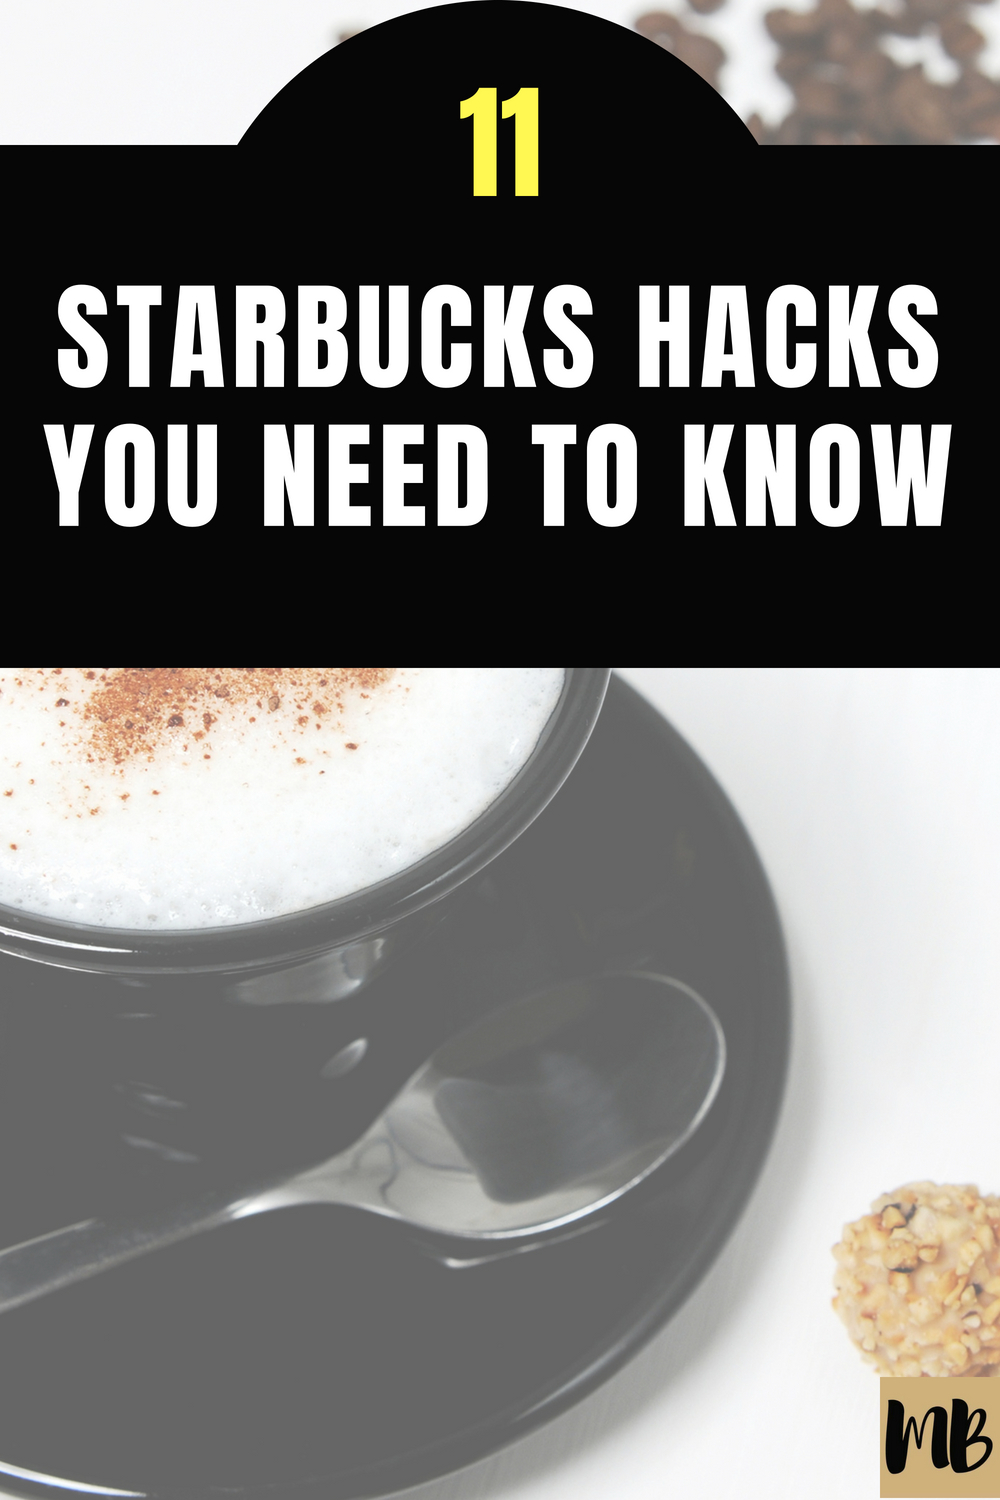 11 Starbucks Hacks for Saving Money You'll Want to Know